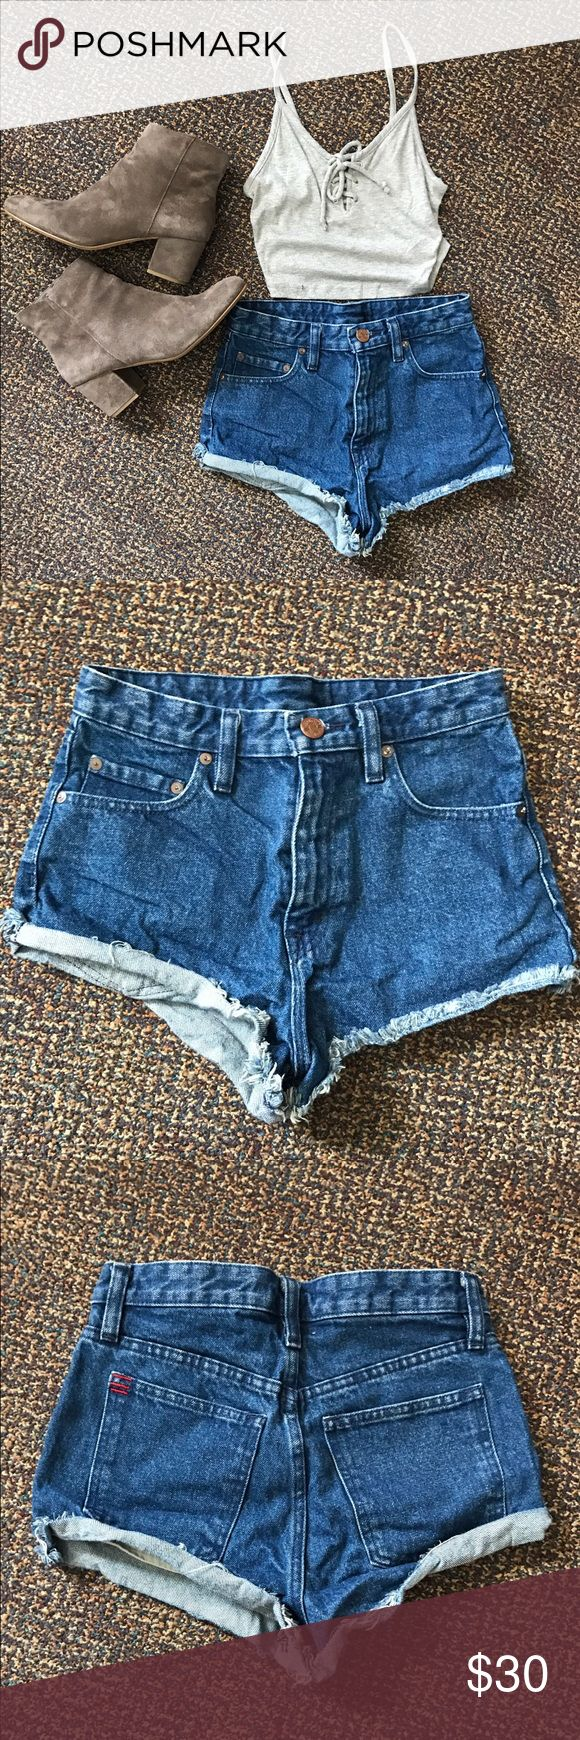 BDG Highrise Denim Shorts Only worn twice! Very cheeky shorts, too much for me but very cute. Bought from Urban Outfitters. Urban Outfitters Shorts Jean Shorts